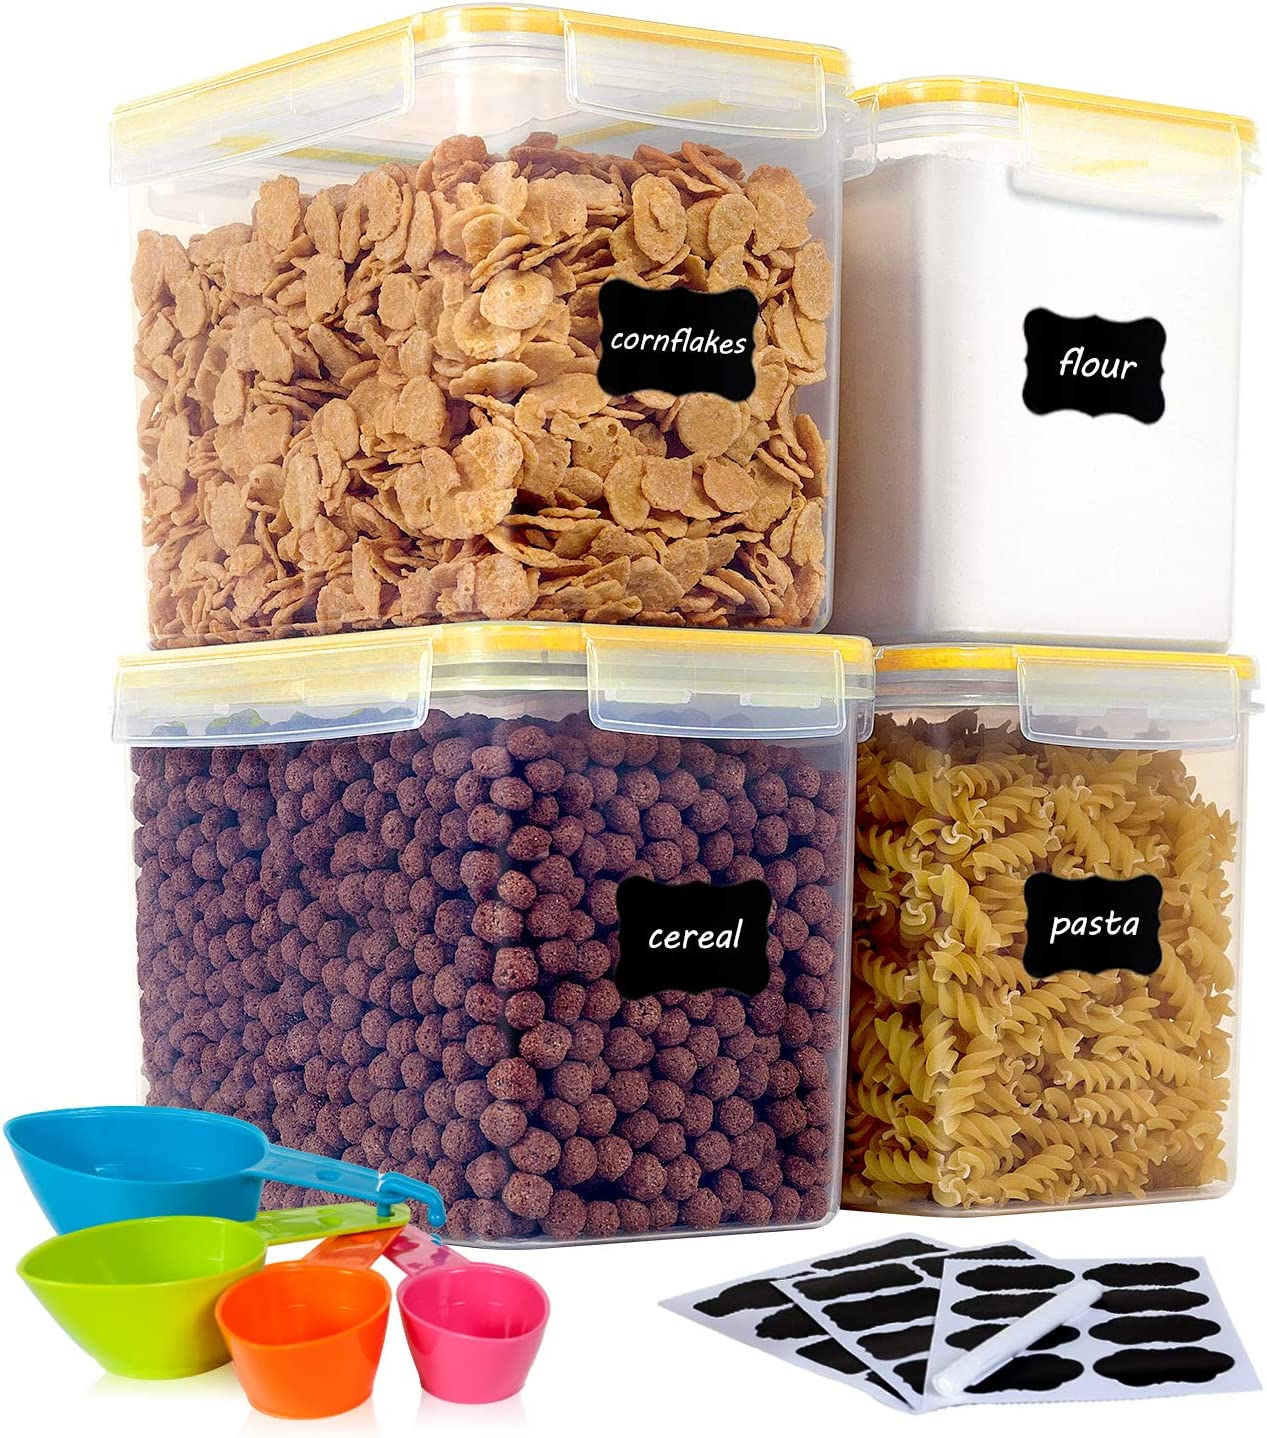 Vtopmart Airtight Food Storage Containers 4 Pieces 3.3 quart / 3.6L- Plastic PBA Free Kitchen Pantry Storage Containers for Sugar,Flour and Baking Supplies - Dishwasher Safe - Include 24 Labels